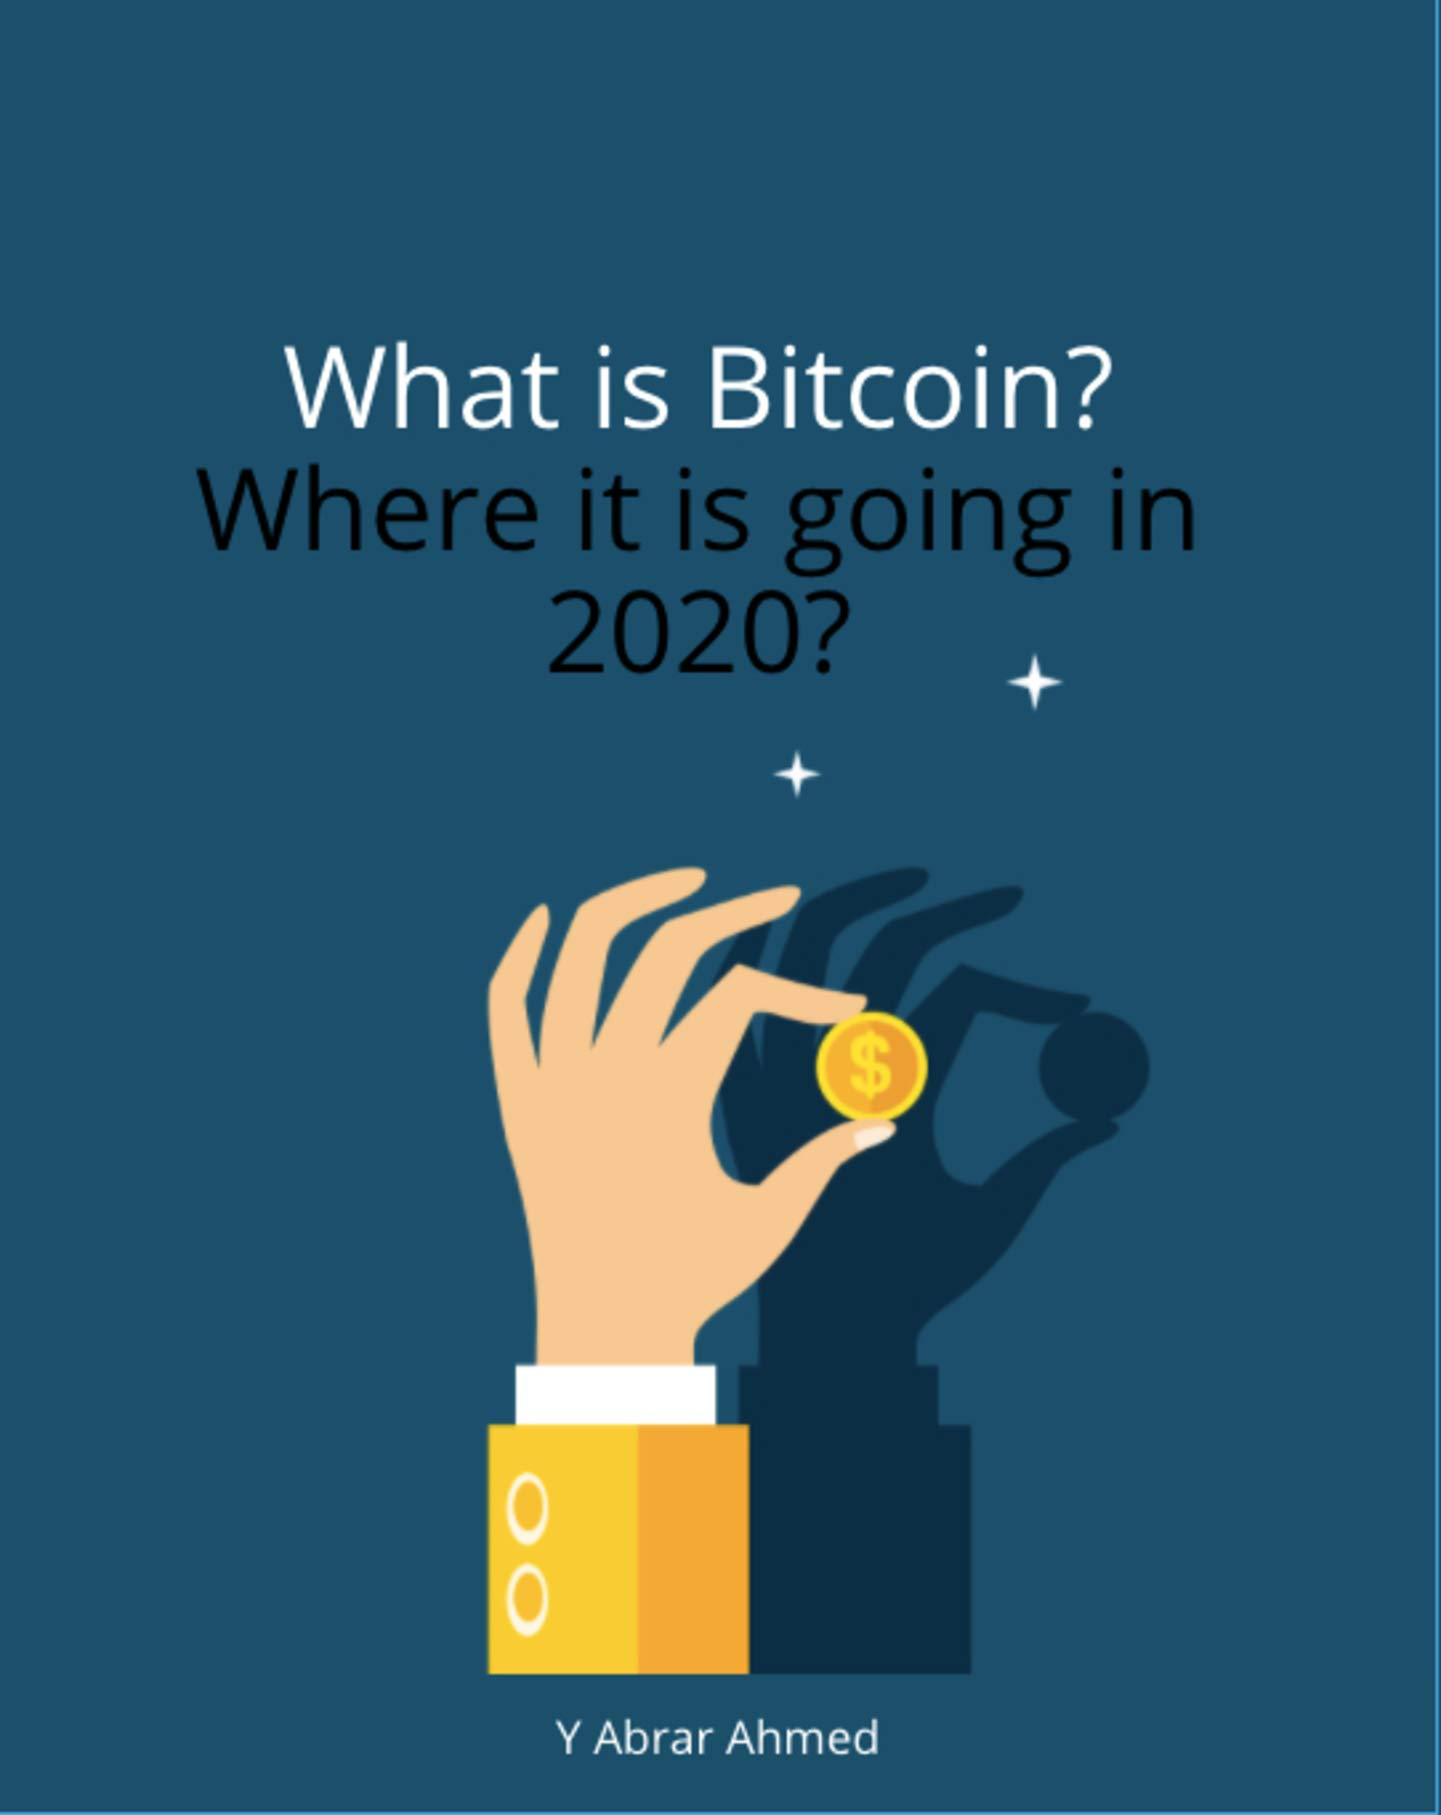 What is Bitcoin?: Where it is going in 2020?